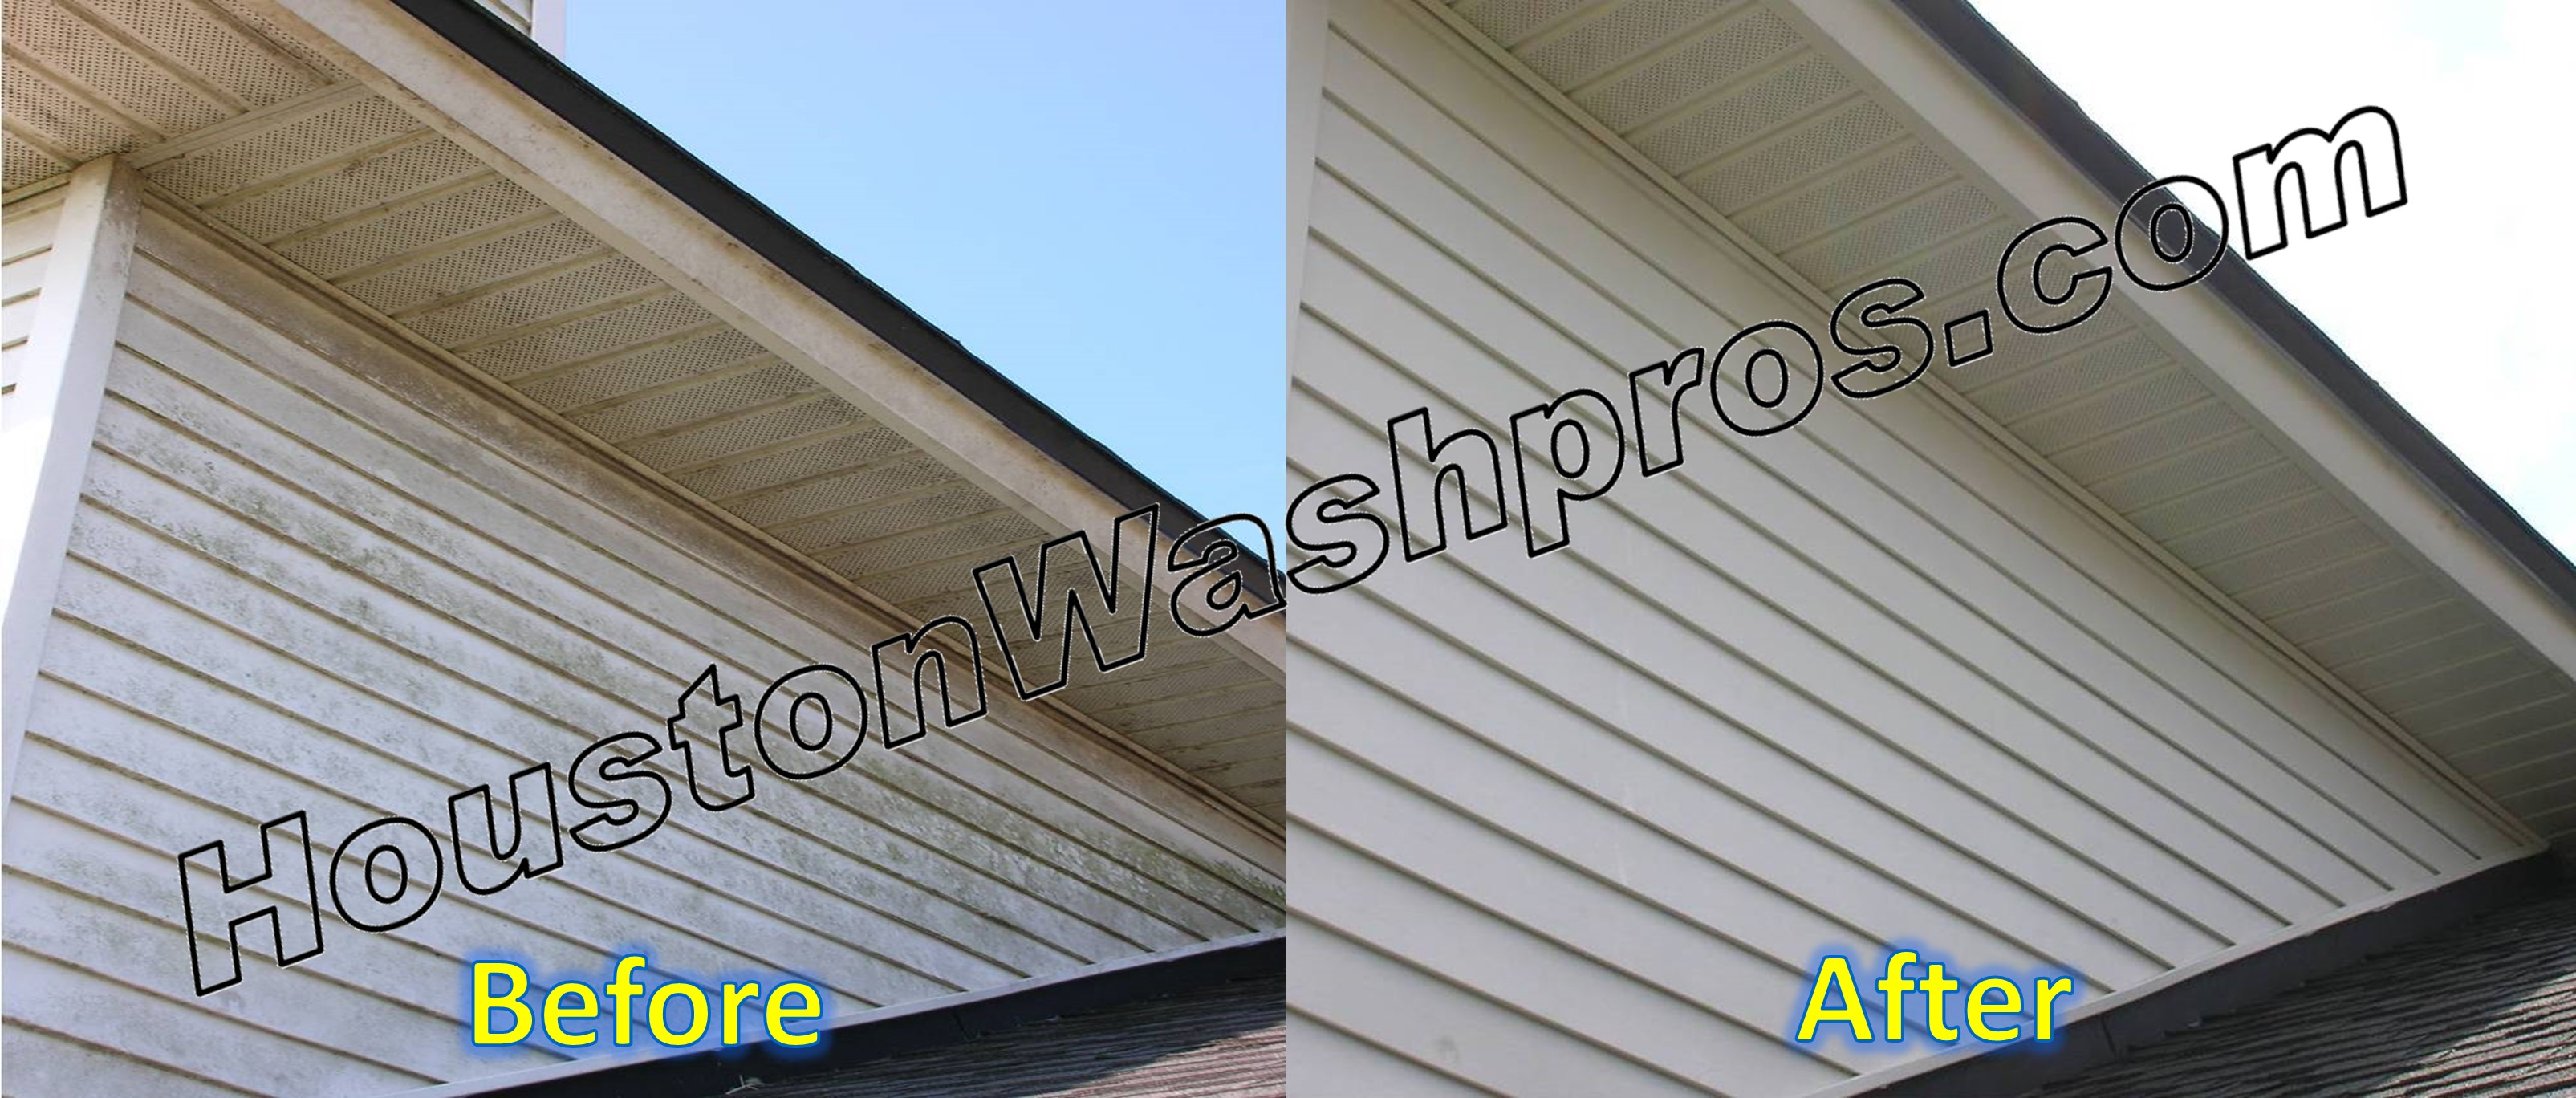 Pressure Washing Houston Houses Pressure Washing Service